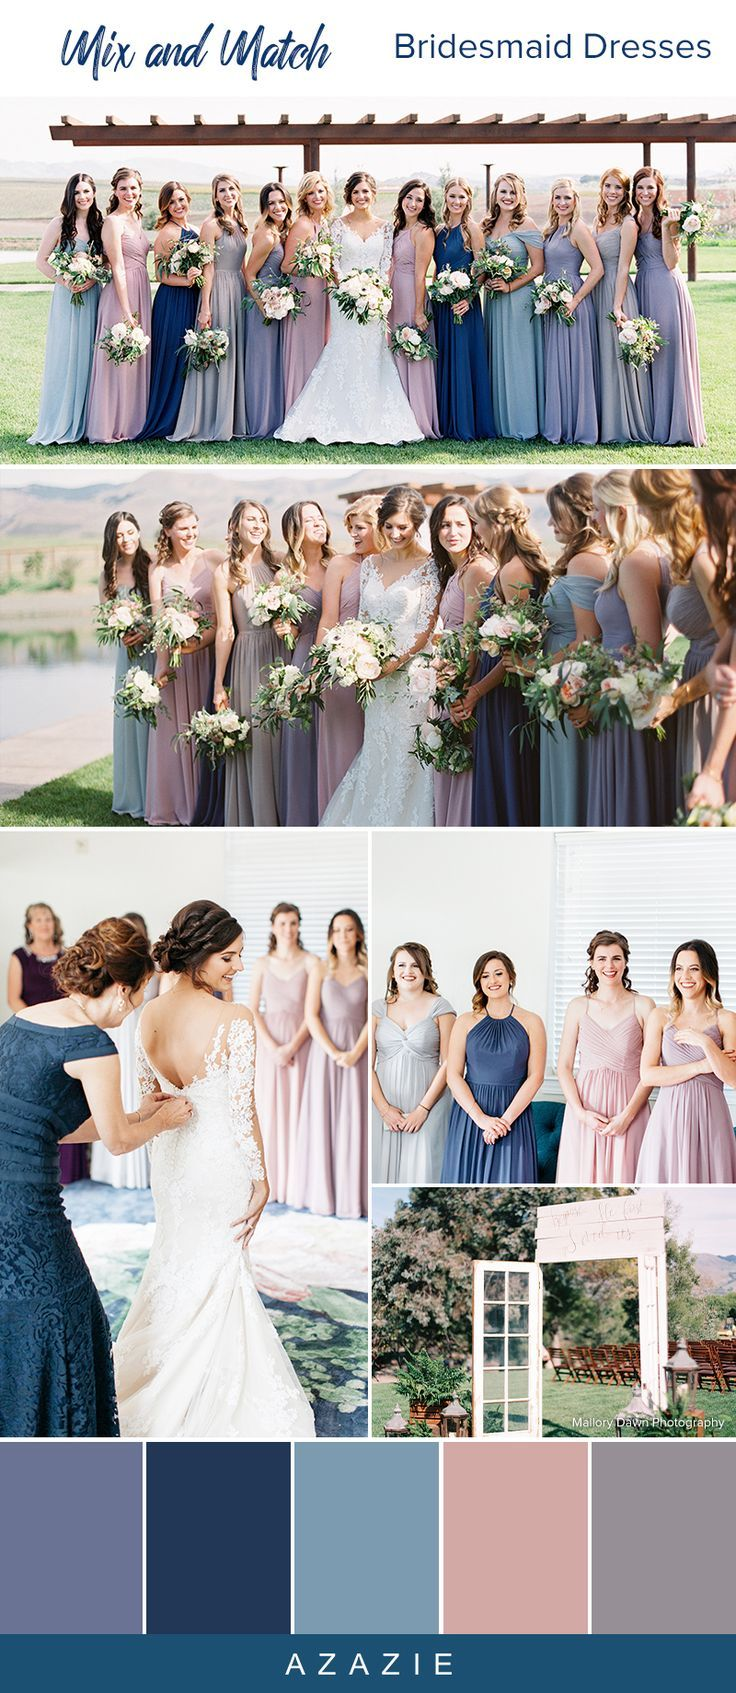 Pin By Witty And Whimsical On Bridesmaid S Dresses Bridesmaid Dress Color Schemes Bridesmaid Dress Colors Bridesmaid Colors [ 1693 x 736 Pixel ]